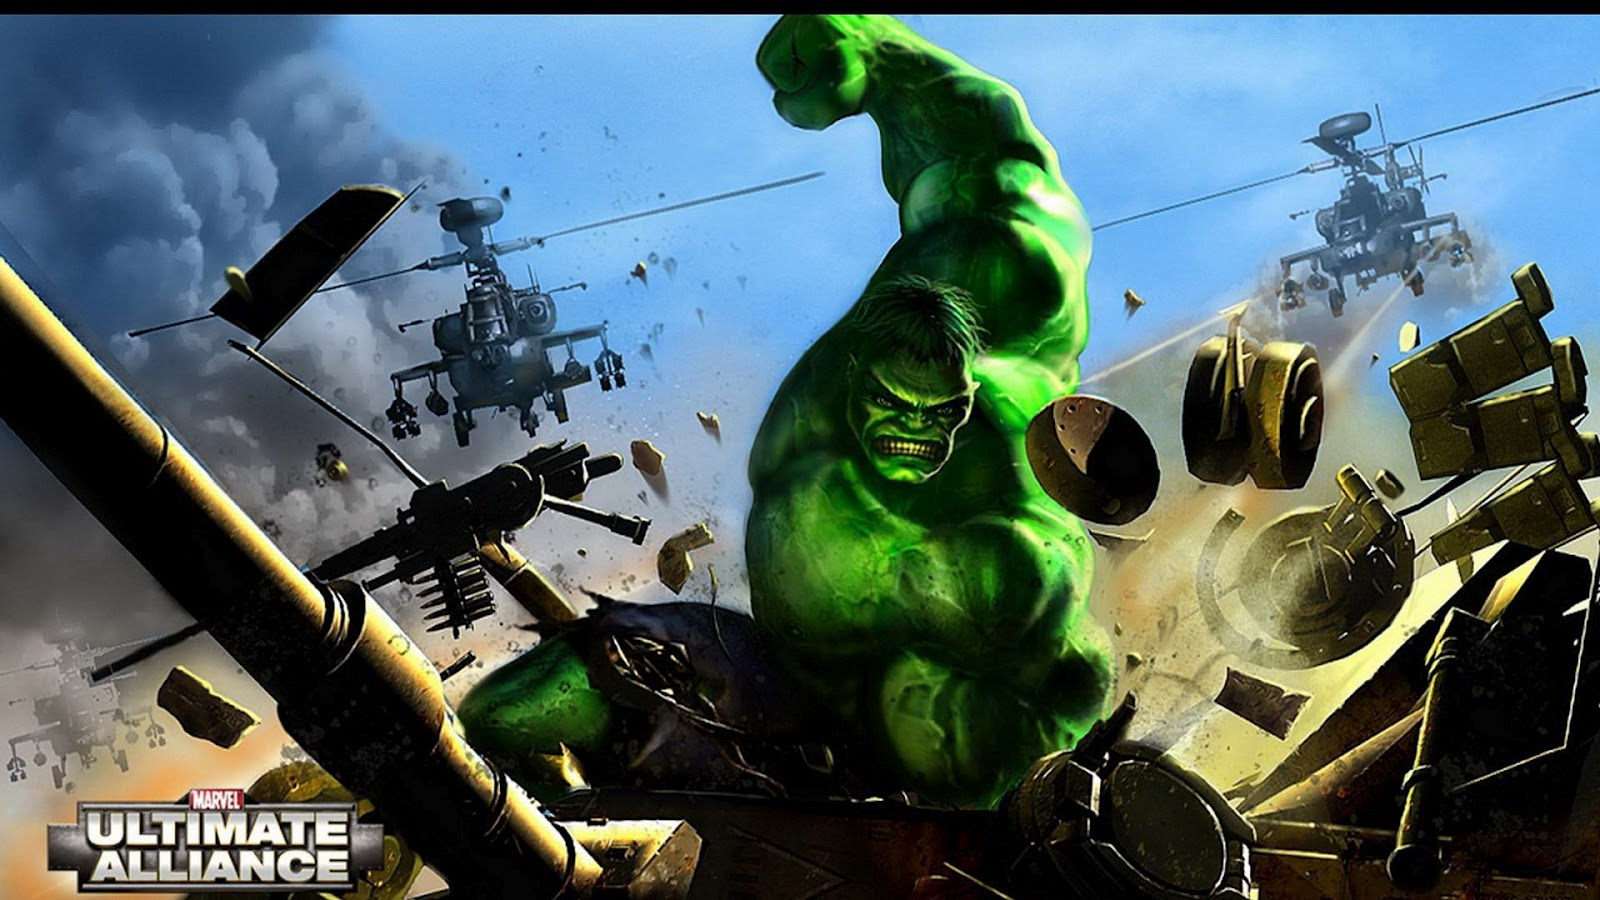 Cool Wallpaper Marvel The Incredible Hulk - The+Incredible+Hulk+Wallpaper+6  2018_798663.jpg